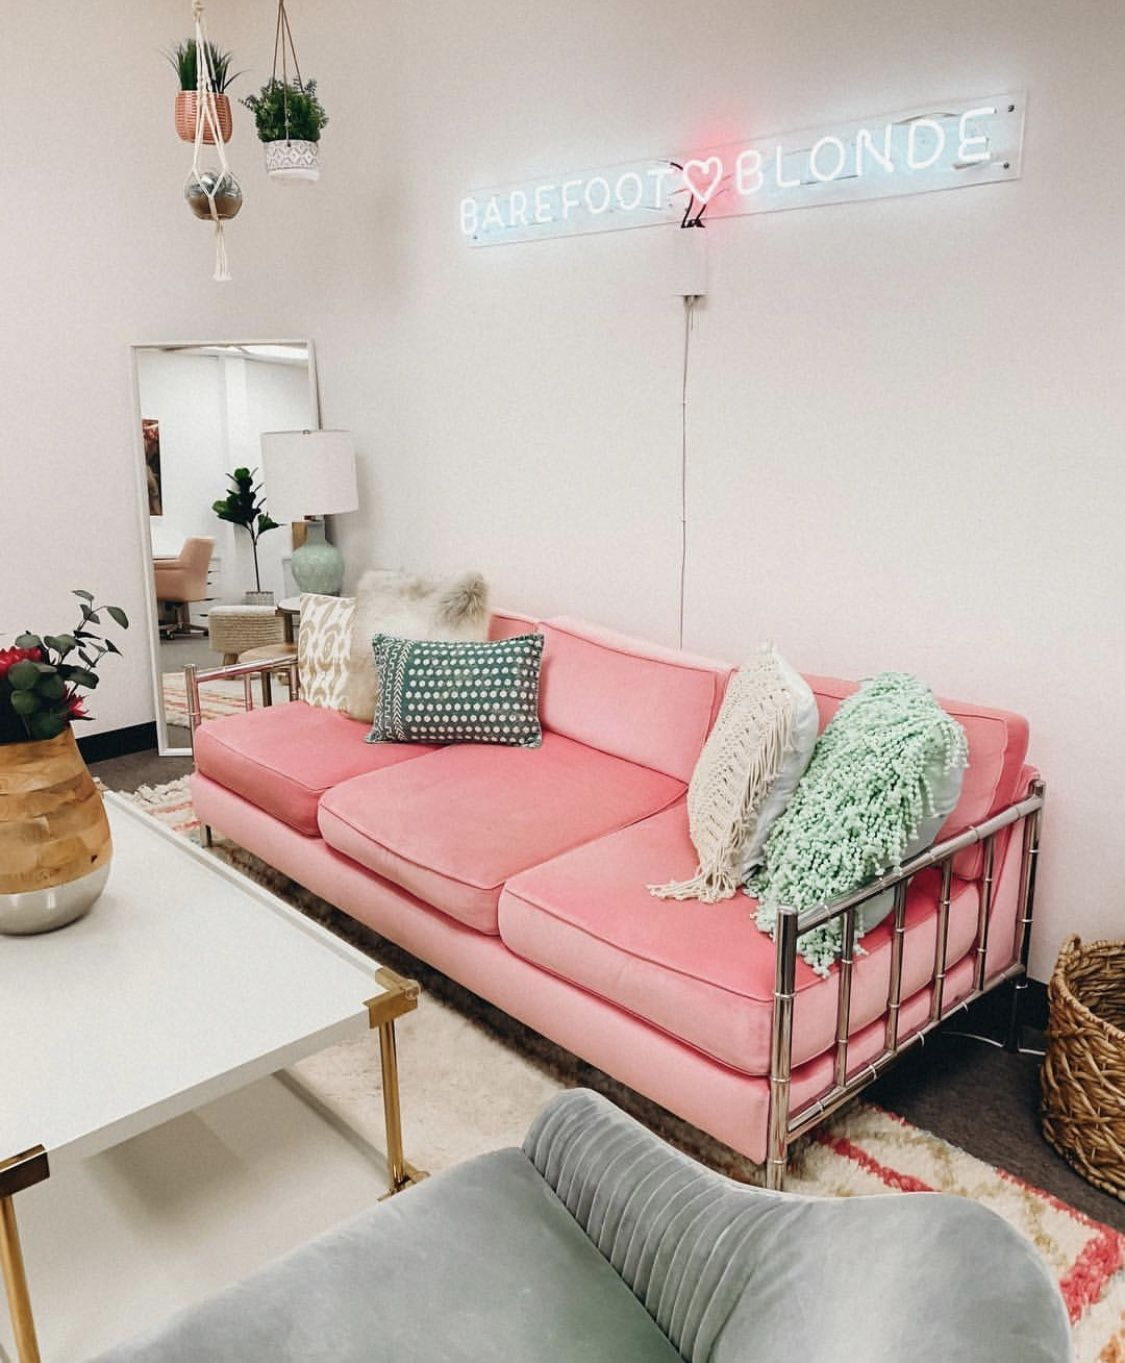 7 Tips Ideas For Living Room Modern 2020 Best Home Ideas And Inspiration Pink Living Room Room Design Home Decor Best home decor for living room